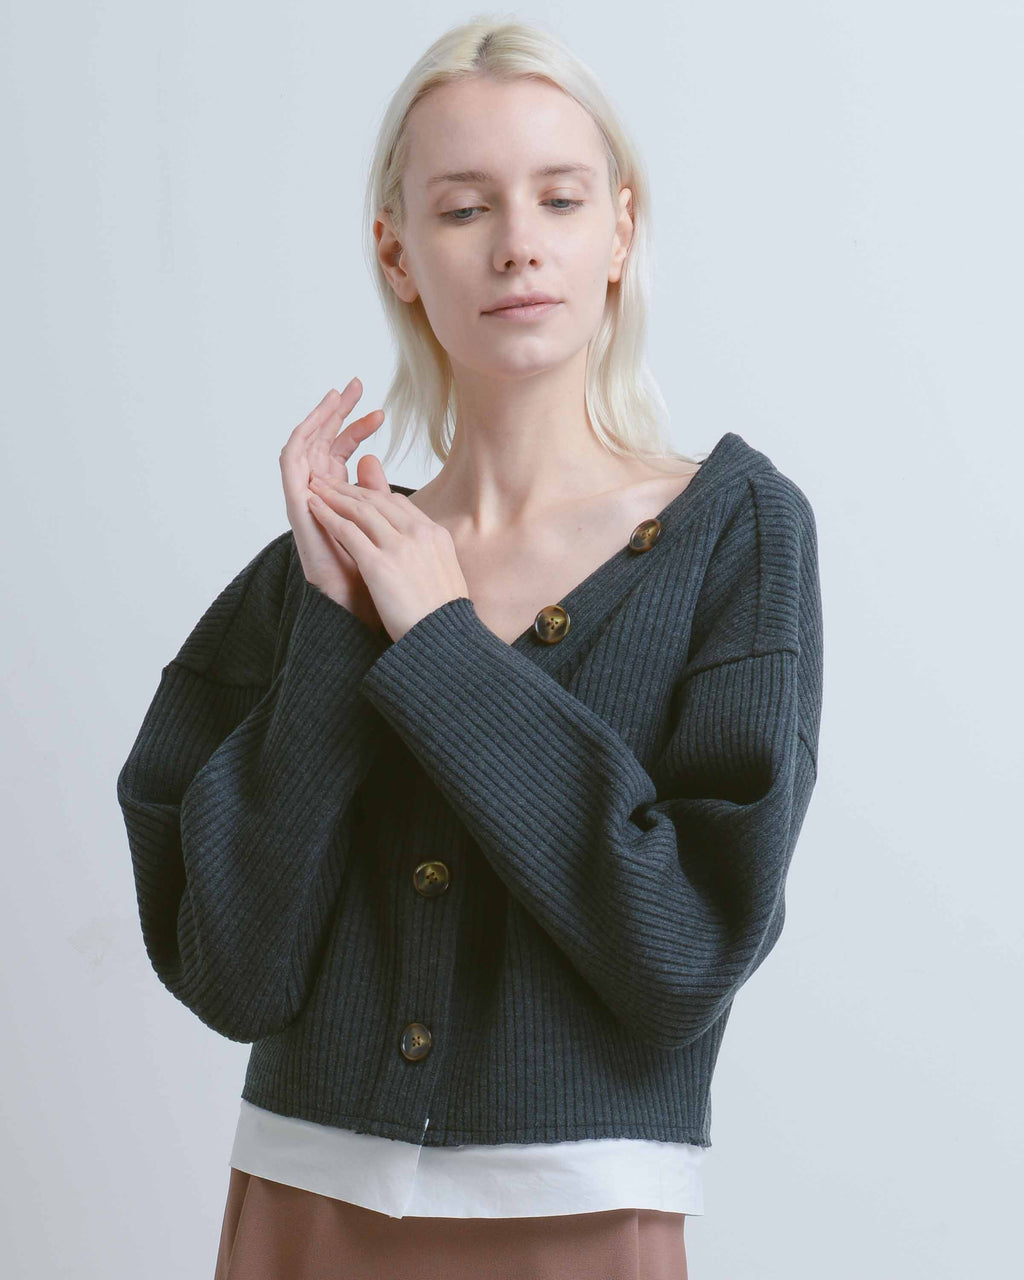 Ella Knit Cardigan